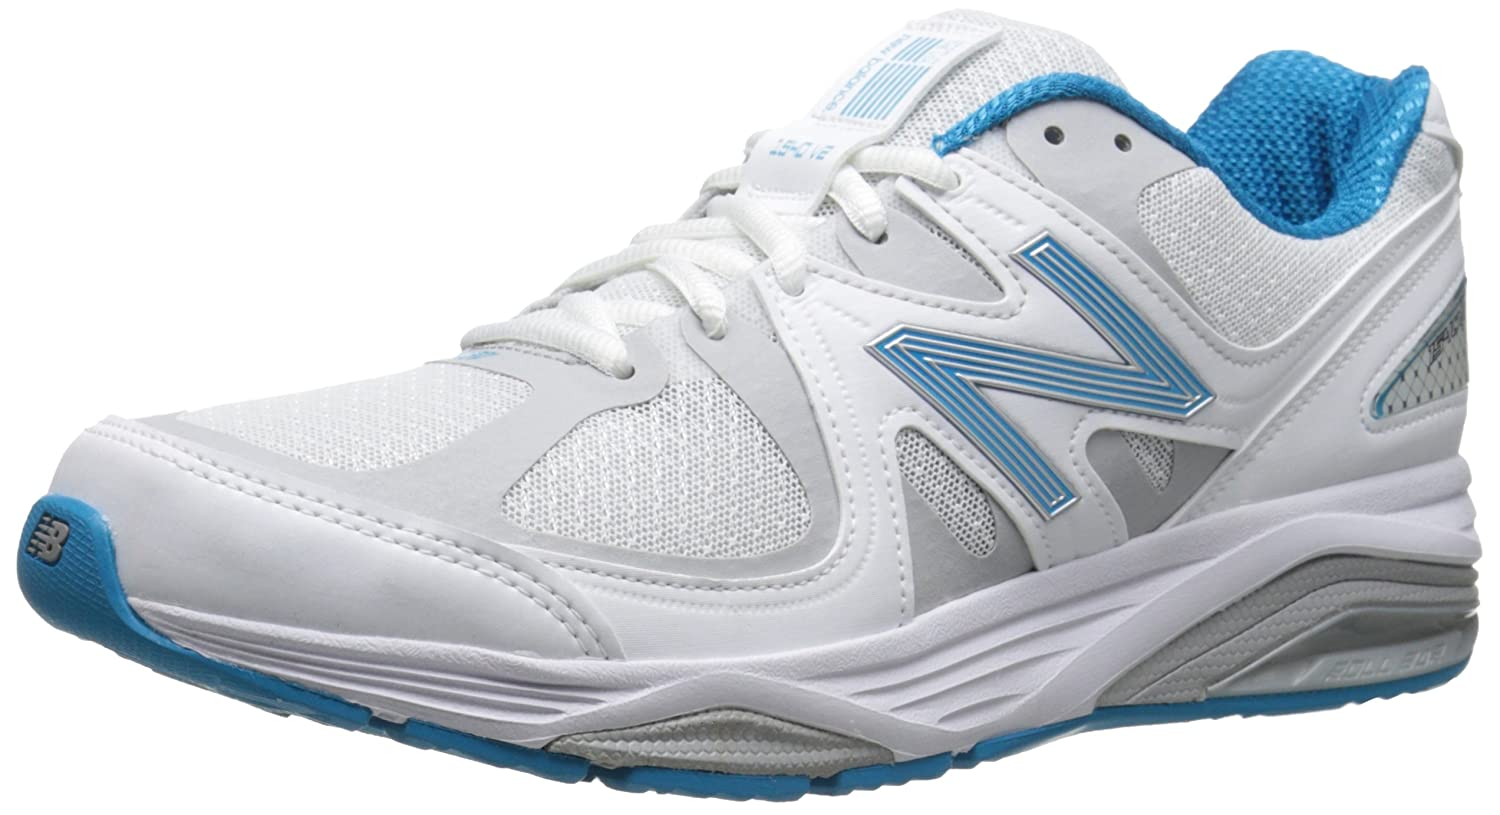 New Balance Women's W1540V2 Running Shoe B00KQ4CKS0 9.5 B(M) US|White/Blue